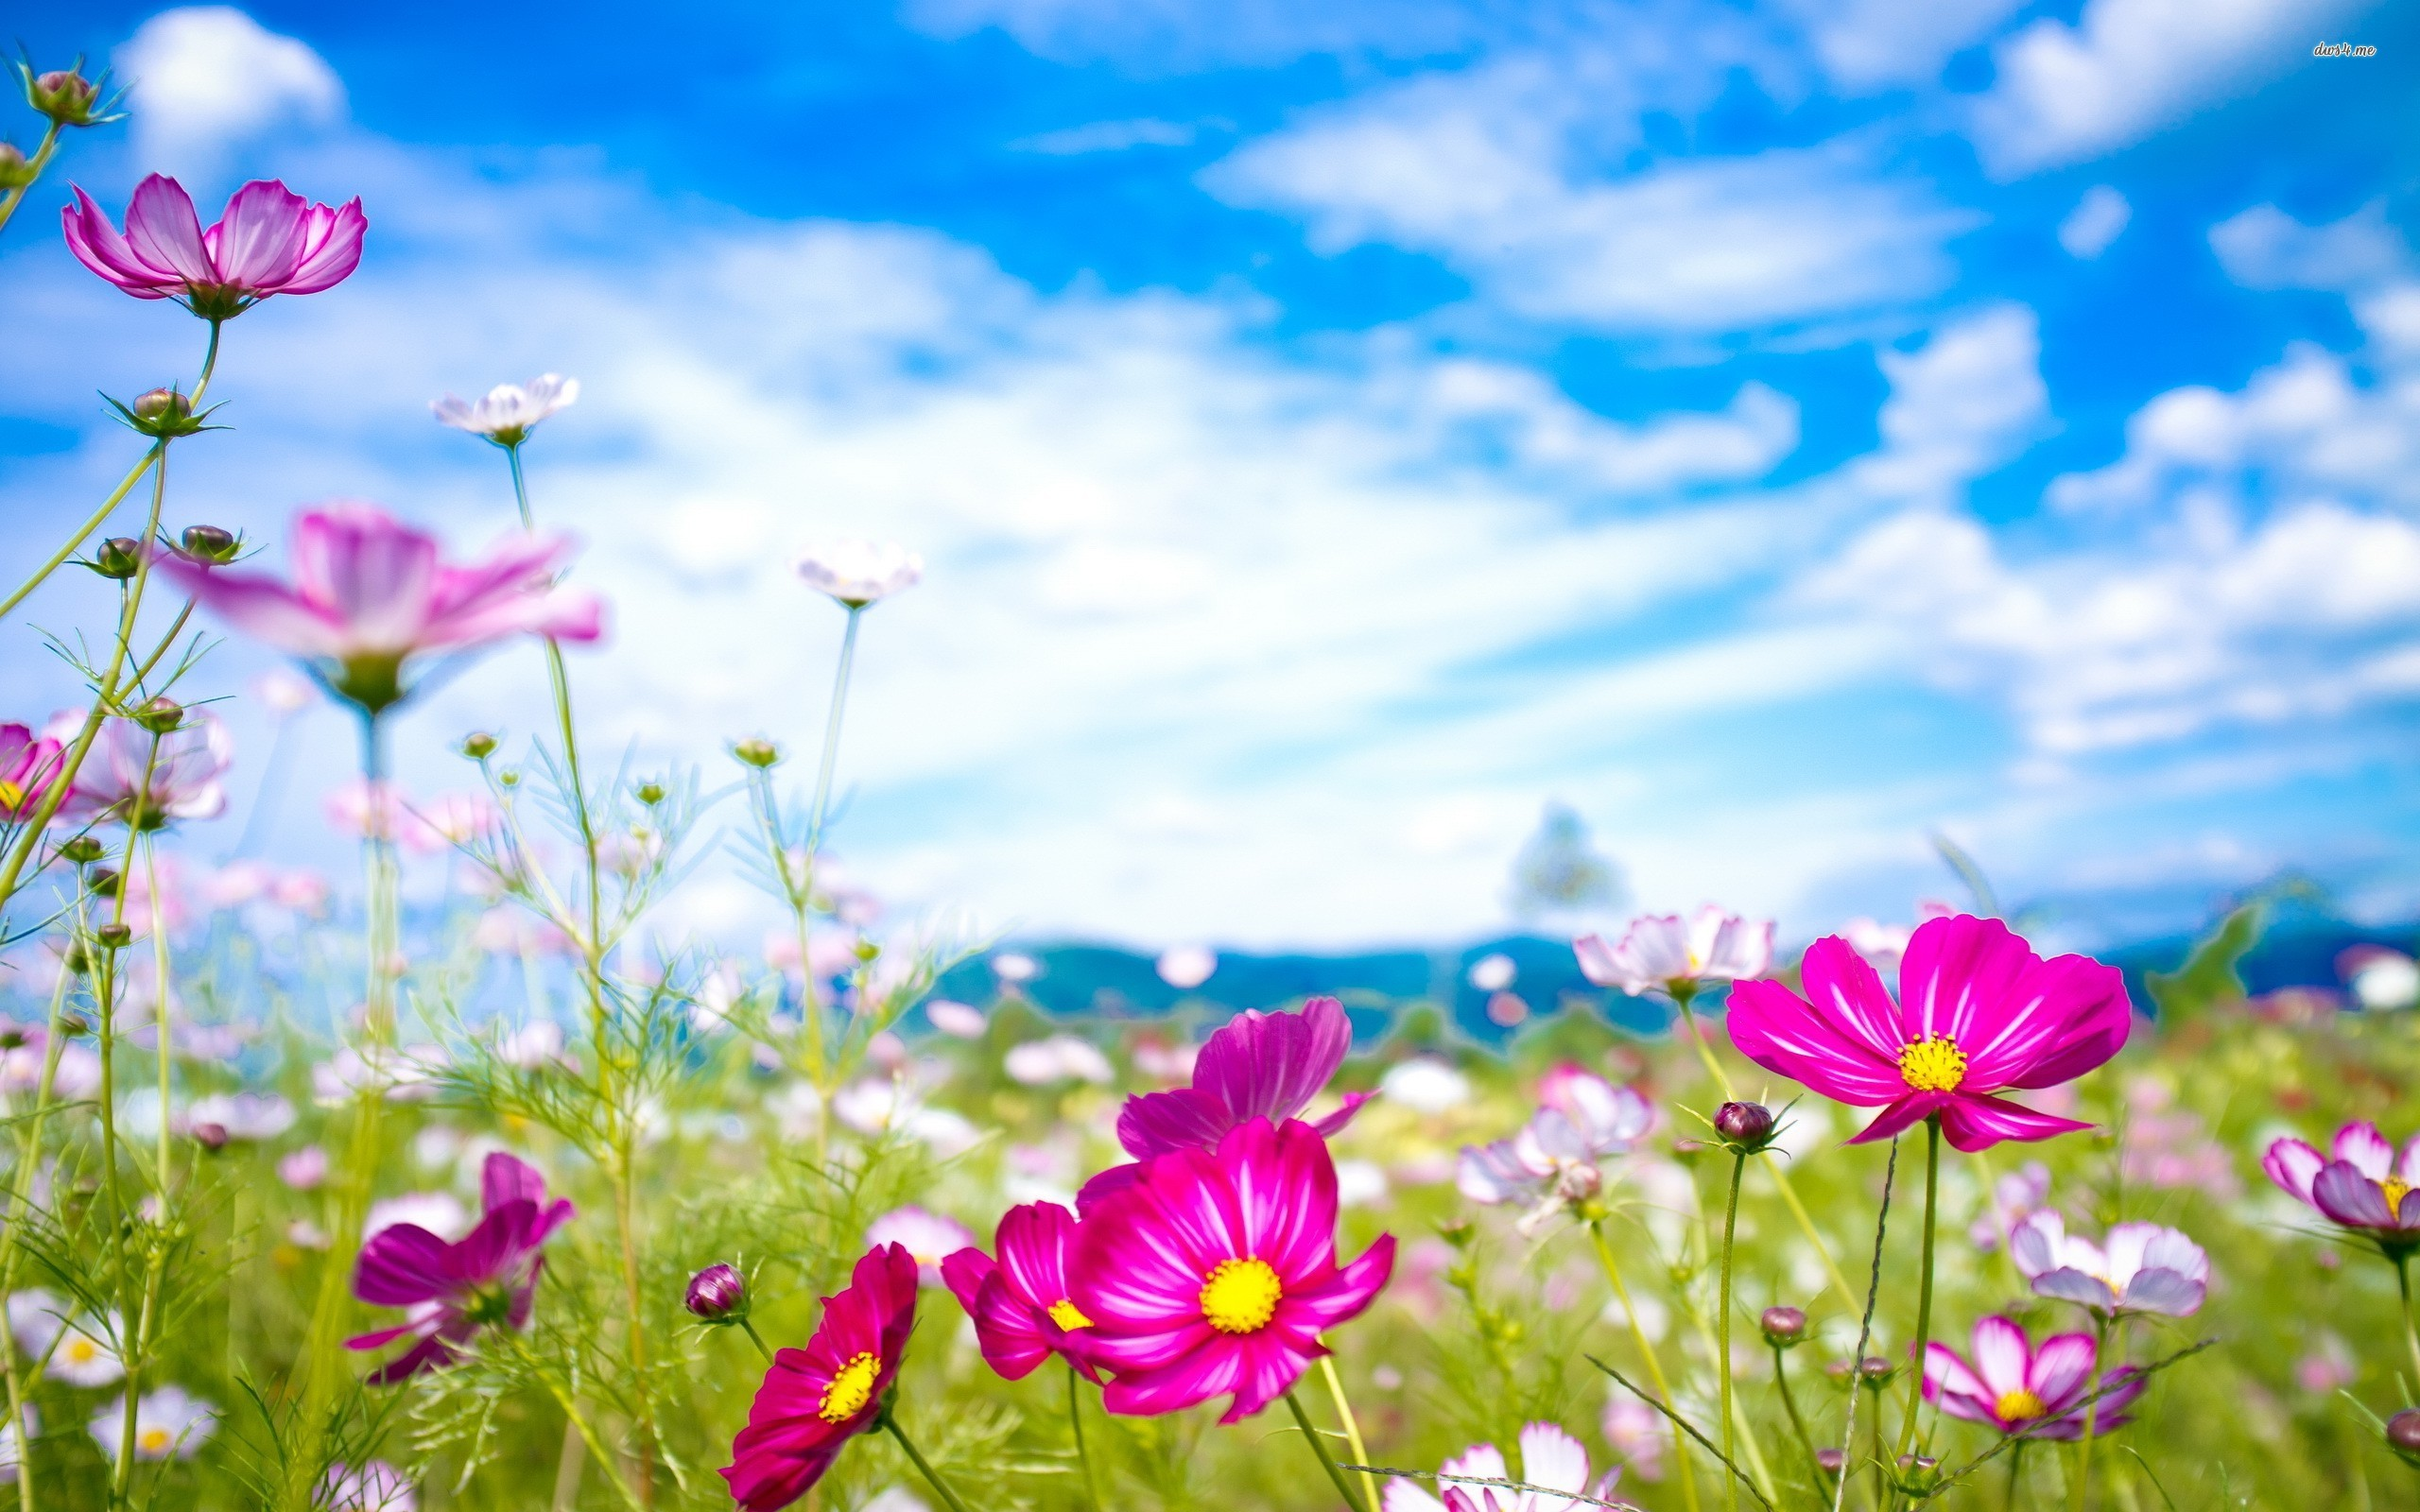 Summer Flowers With Skyline Wallpaper Background 45427726 2560x1600